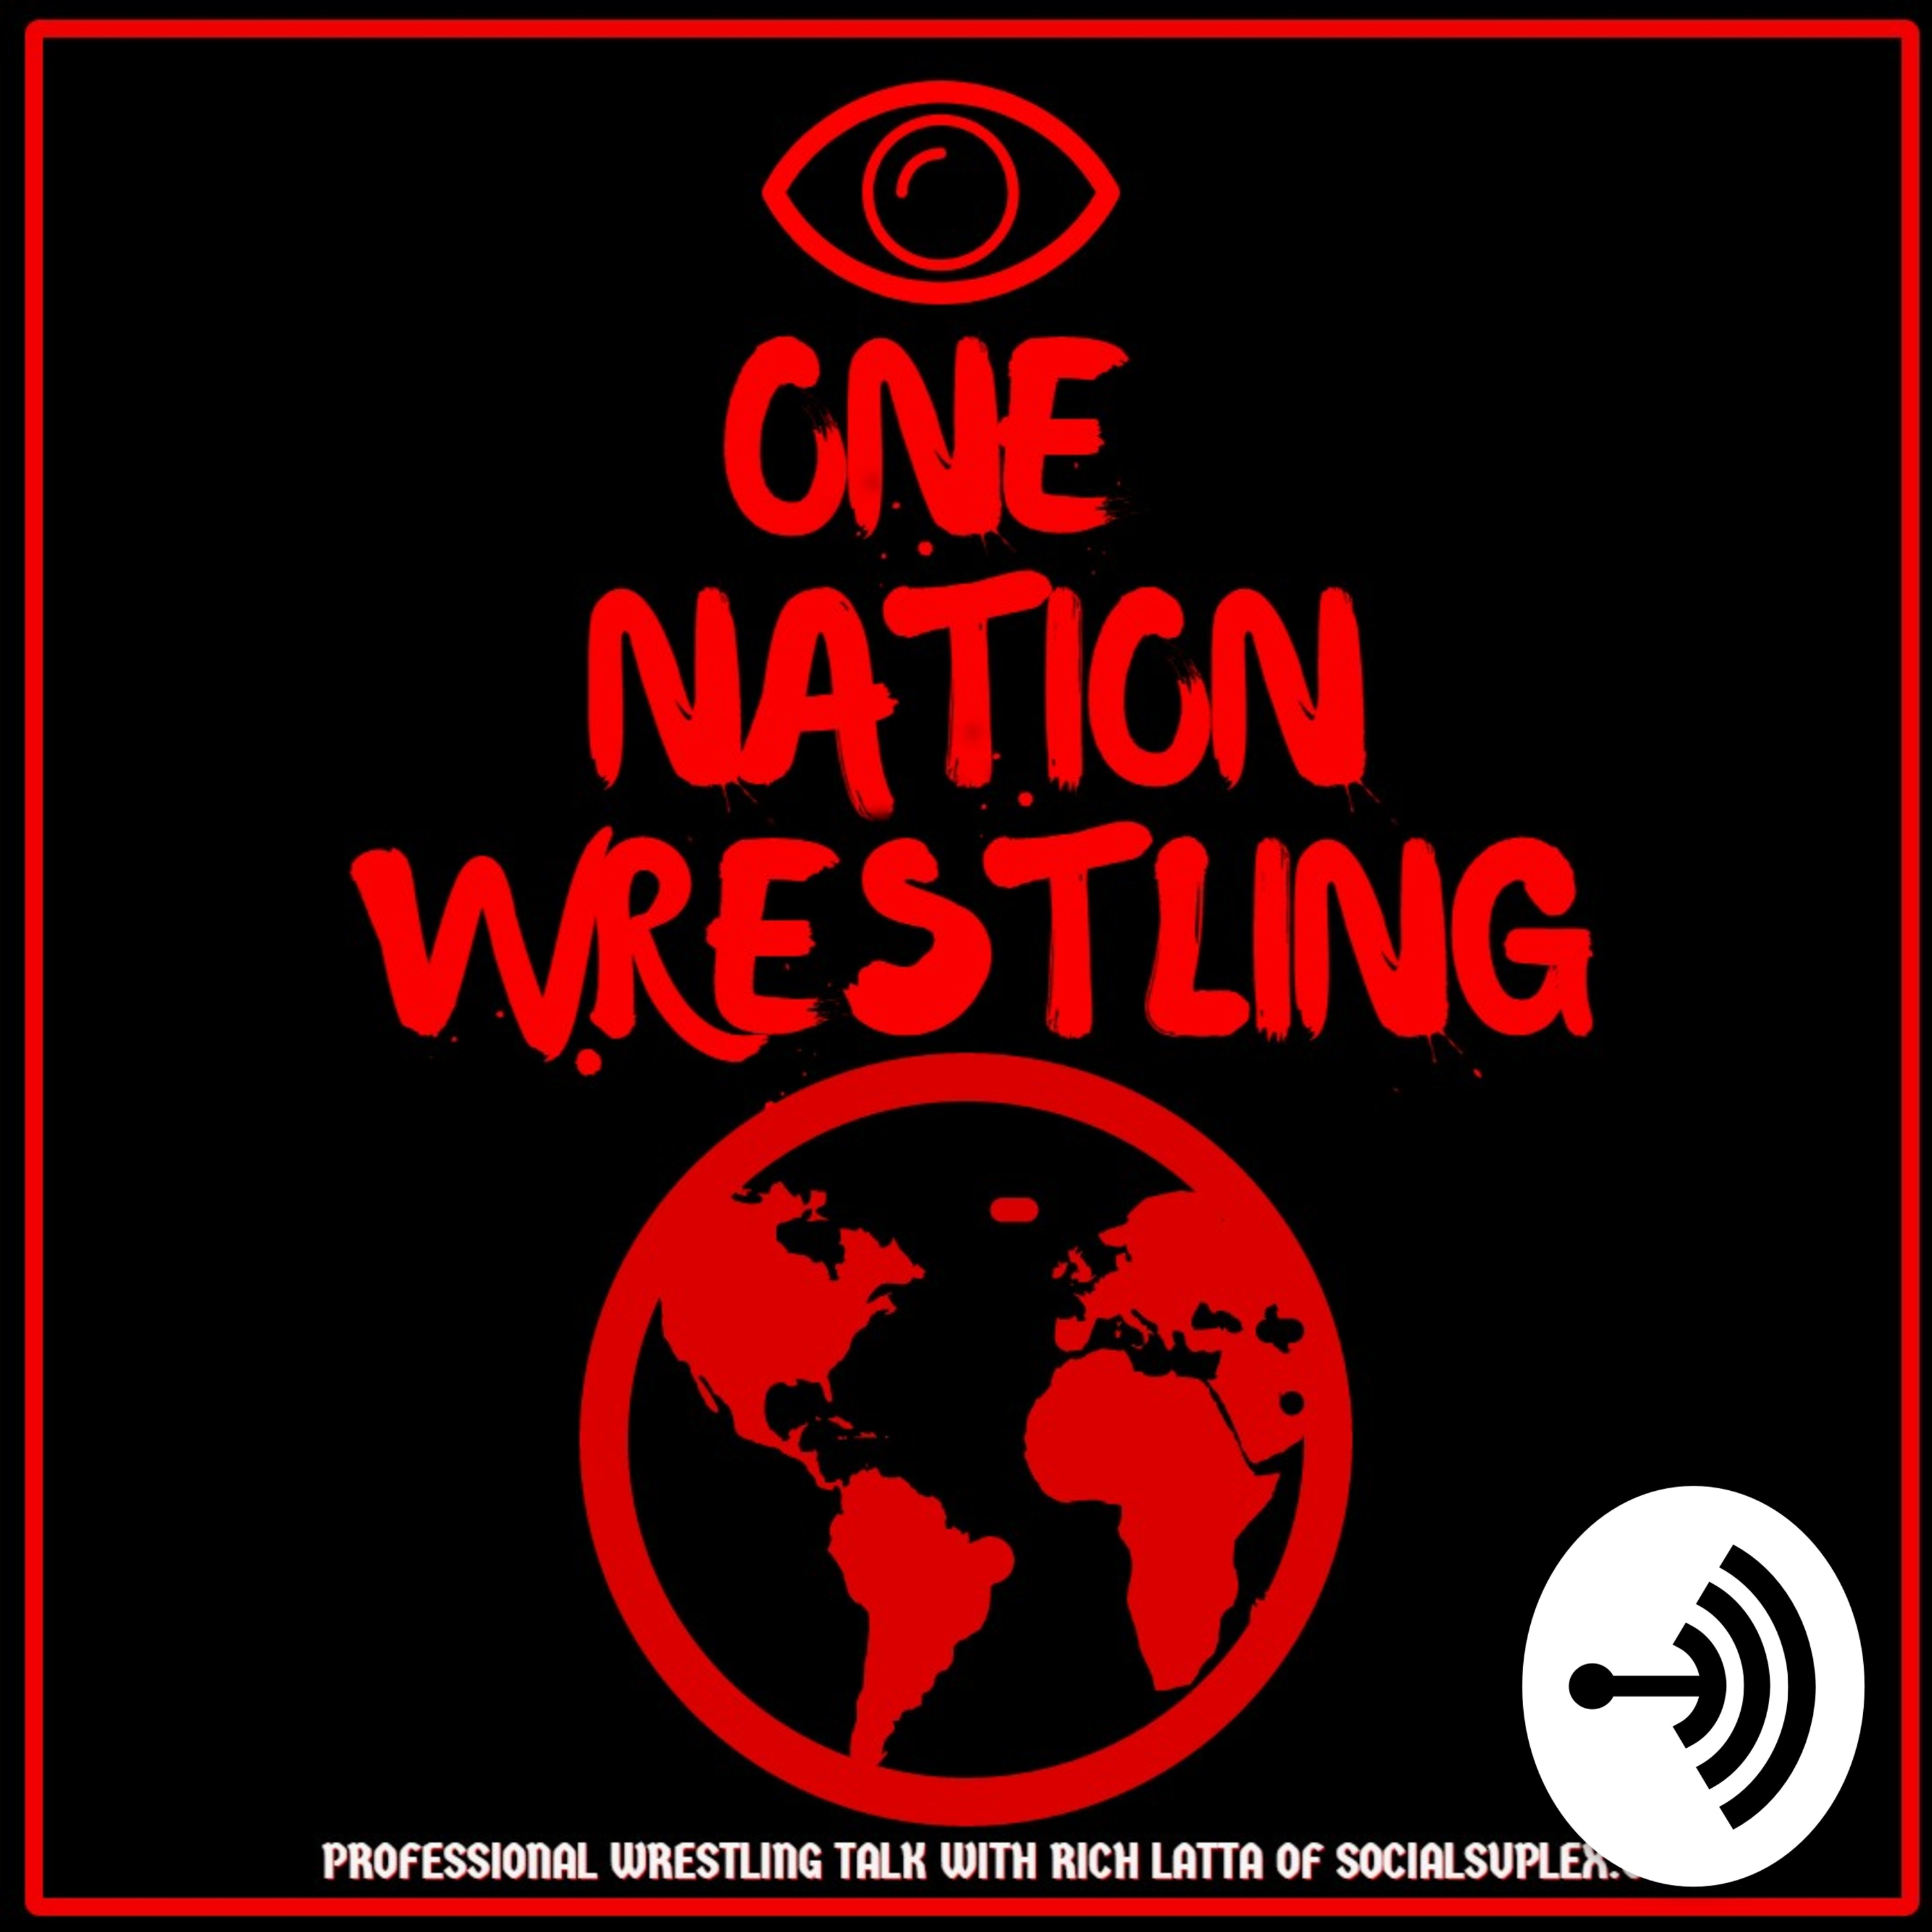 One Nation Wrestling - With Rich Latta